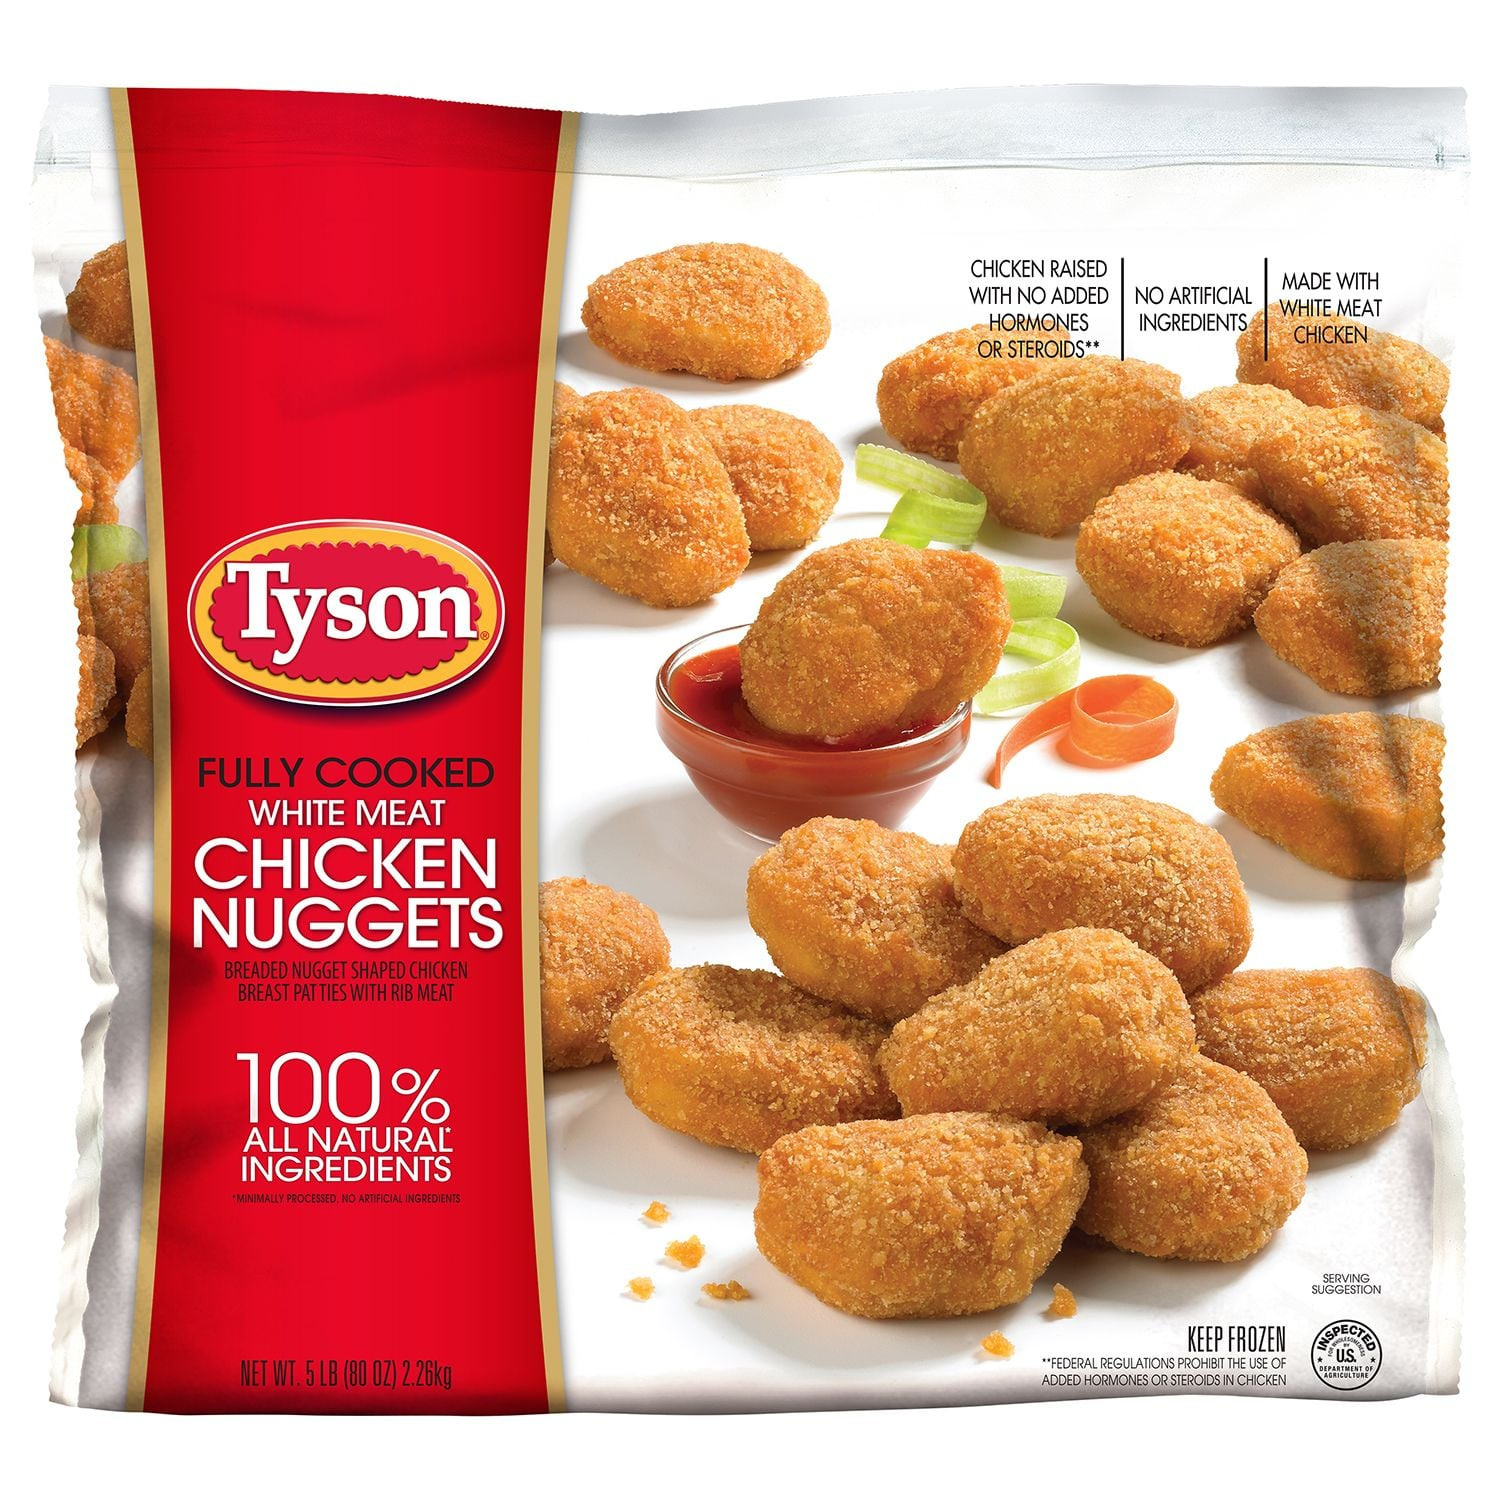 Recall Tyson Chicken Nuggets 2016 Ugg Australia Shipping Code